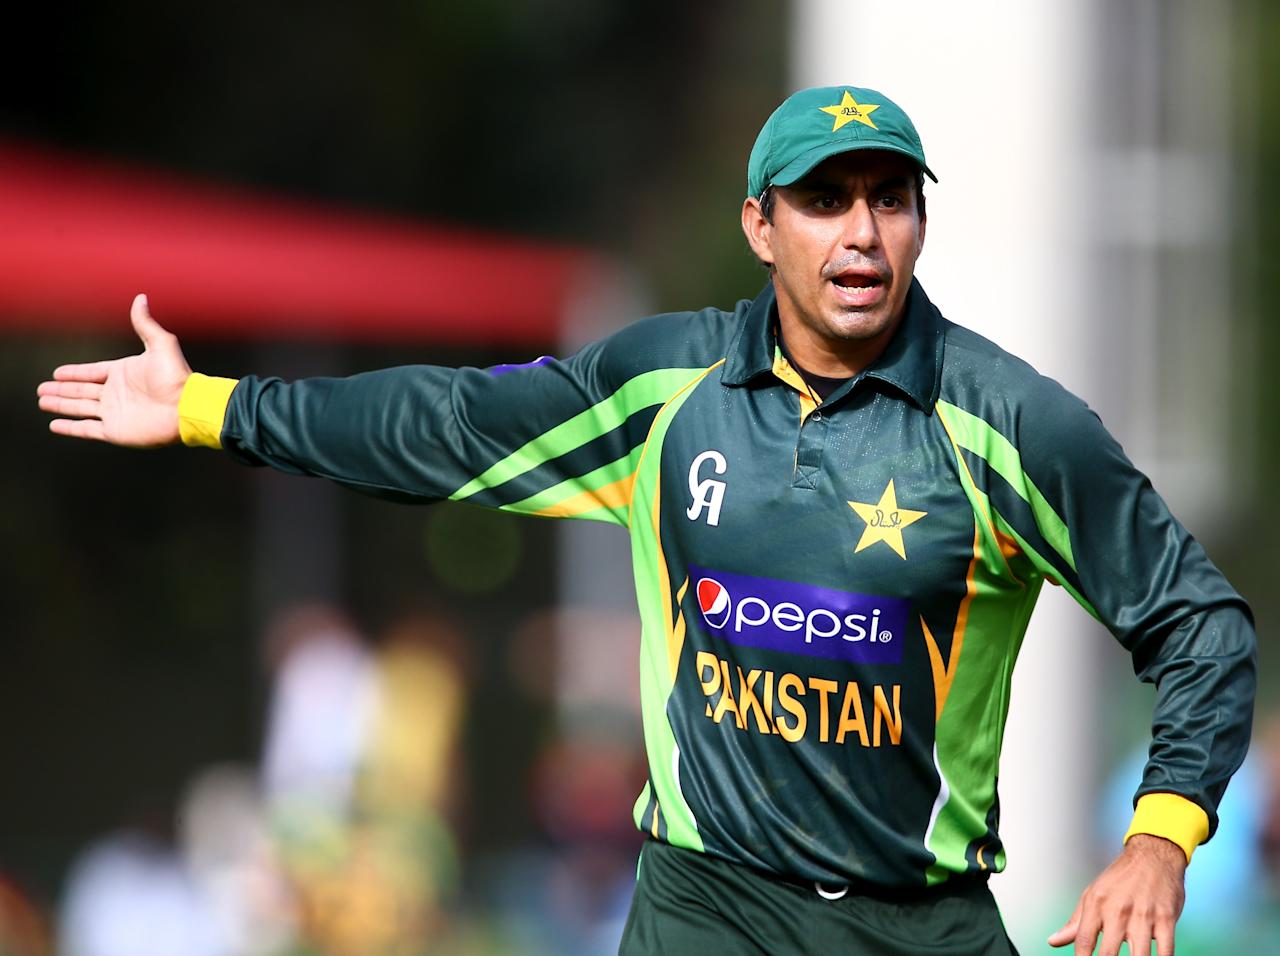 PORT ELIZABETH, SOUTH AFRICA - NOVEMBER 27: Nasir Jamshed of Pakistan gestures during the 2nd One Day International match between South Africa and Pakistan at AXXESS St Georges on November 27, 2013 in Port Elizabeth, South Africa. (Photo by Richard Huggard/Gallo Images)